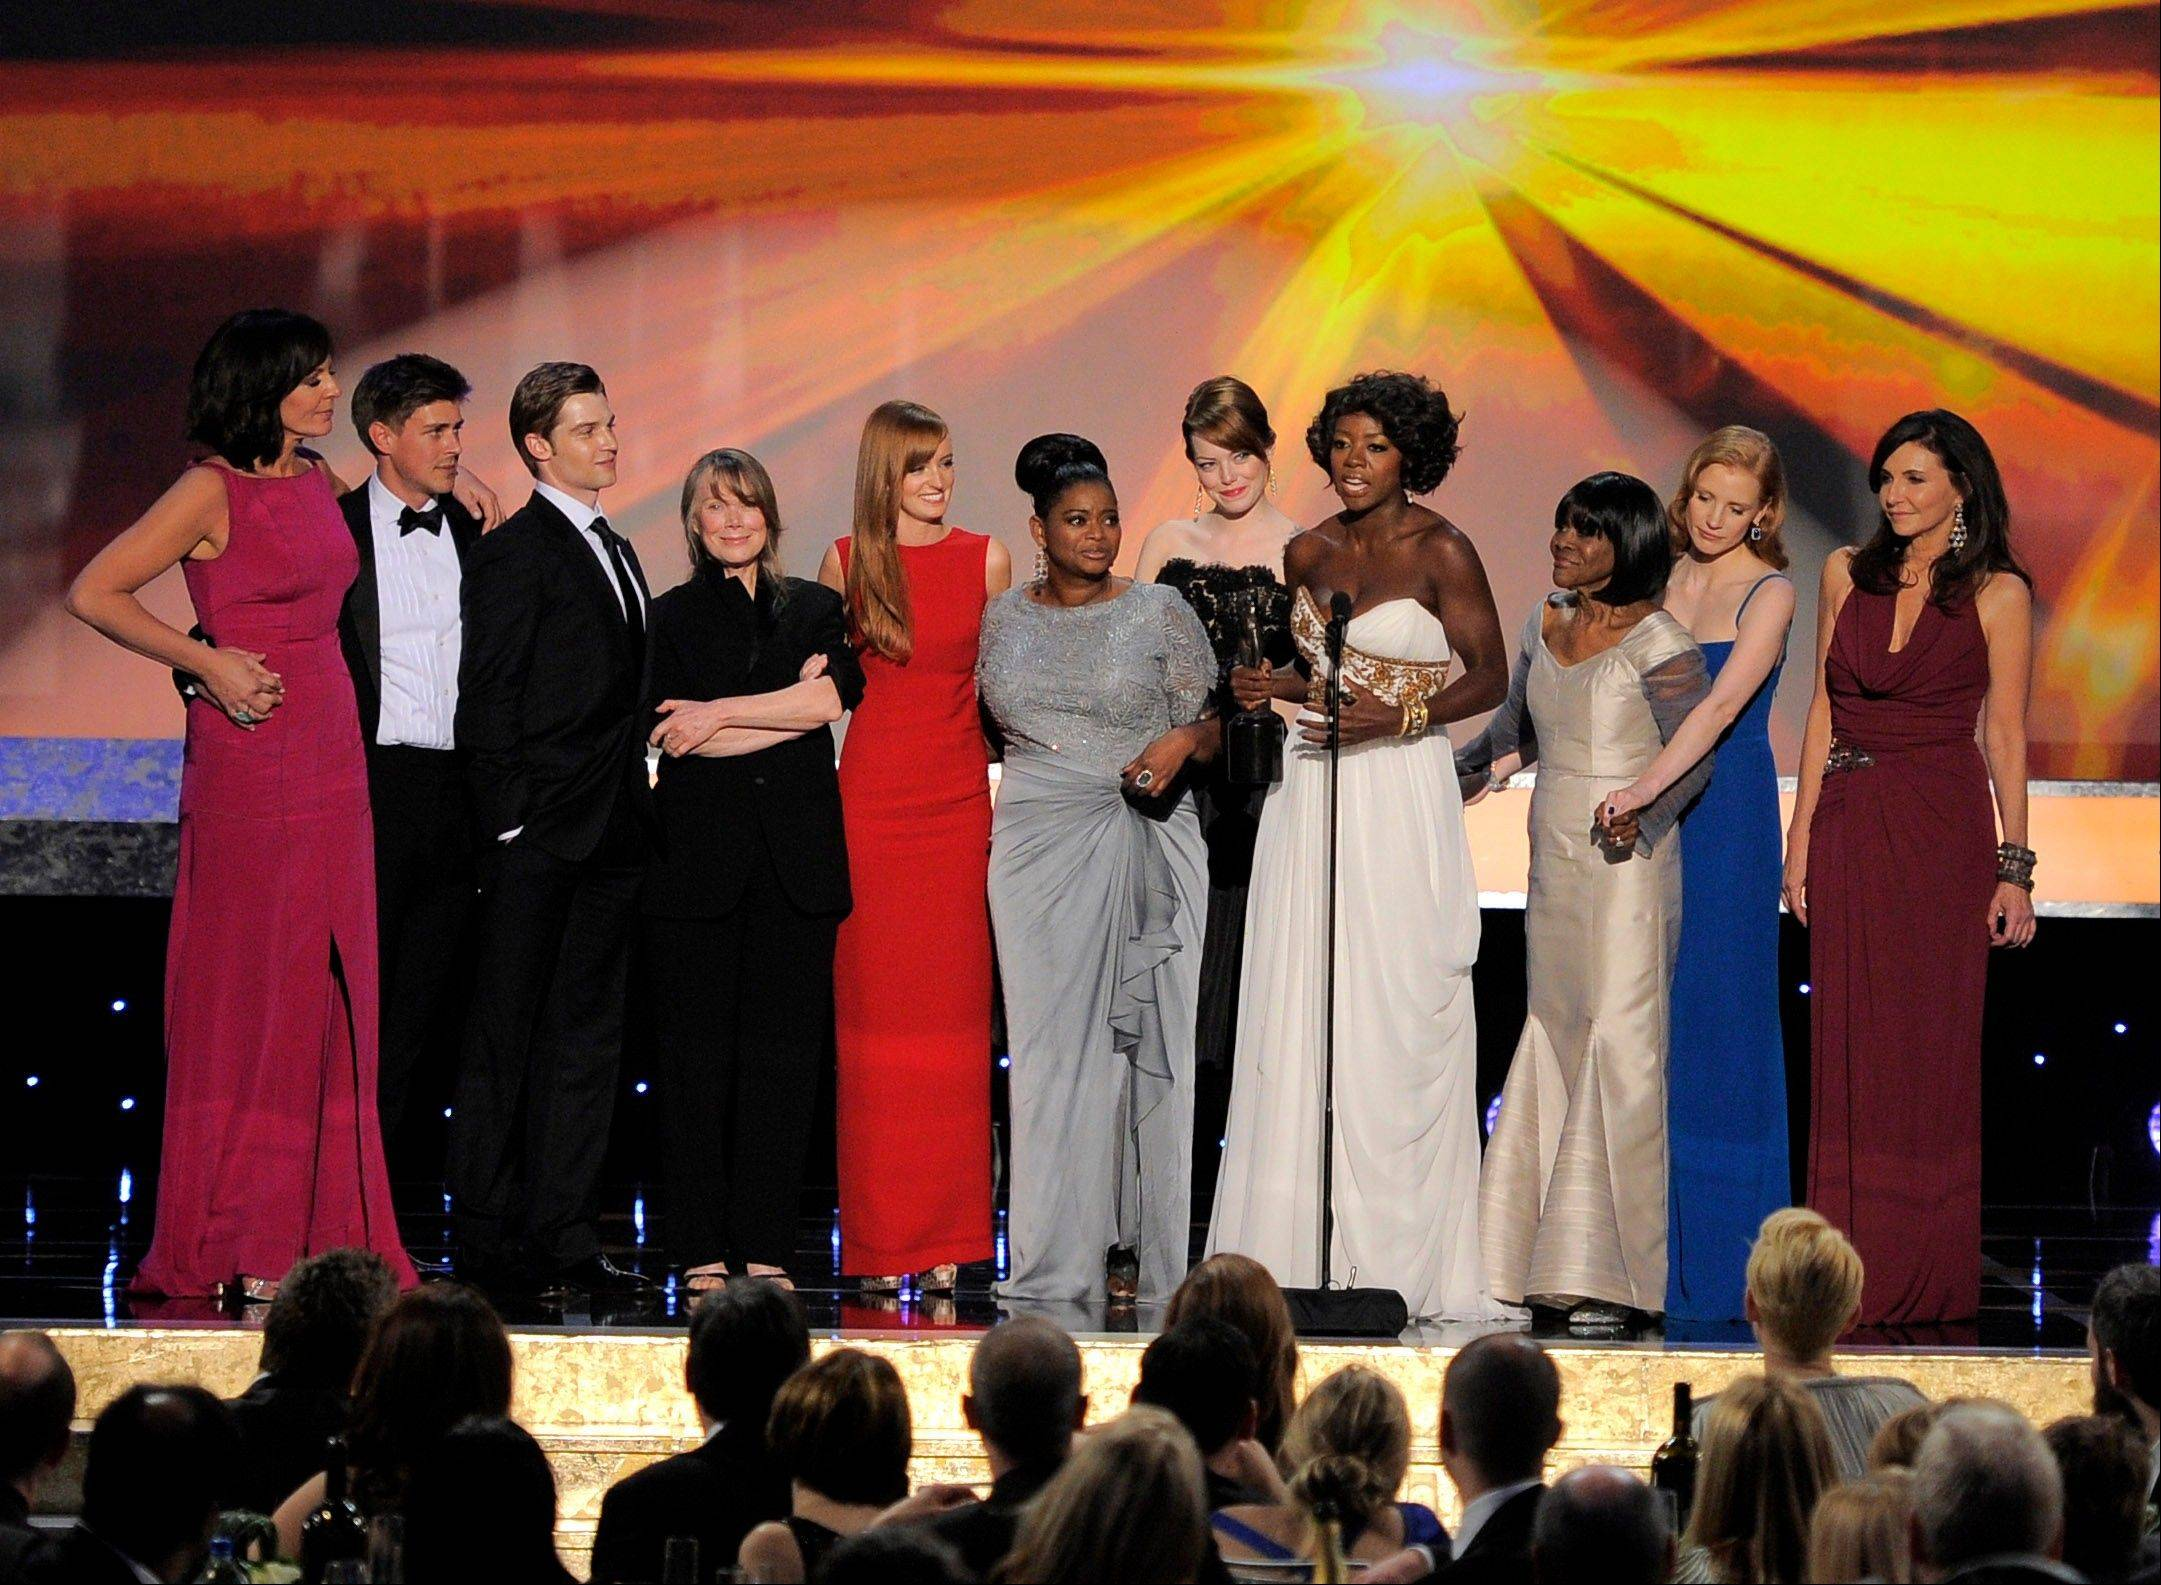 "ASSOCIATED PRESSThe cast of ""The Help"" accepts the award for outstanding performance by a cast in a motion picture. From left, Allison Janney, Chris Lowell, Mike Vogel, Sissy Spacek, Ahna O'Reilly, Octavia Spencer, Emma Stone, Viola Davis, Cicely Tyson, Jessica Chastain and Mary Steenburgen."